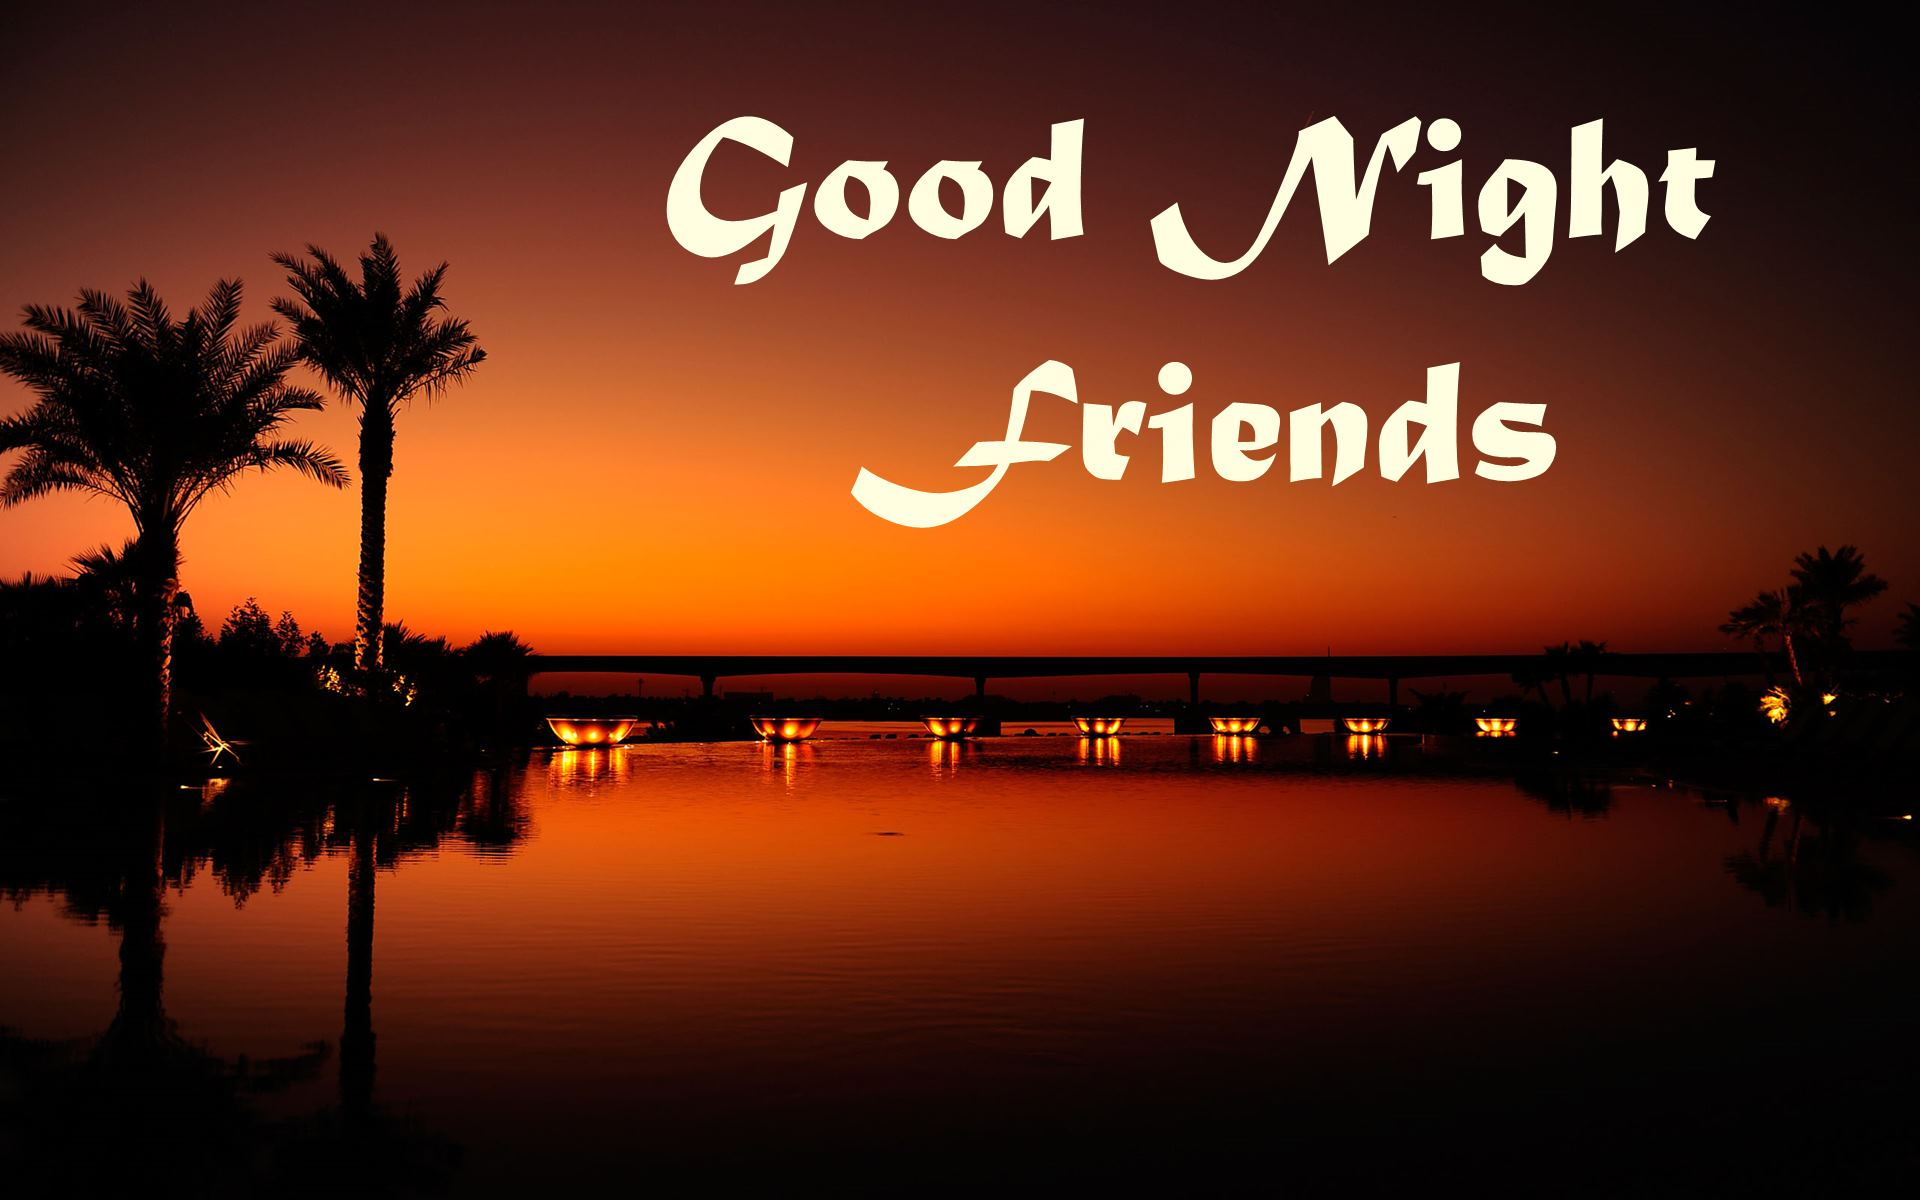 Good night quotes with beautiful scenery quotesgram - Good night nature pic ...